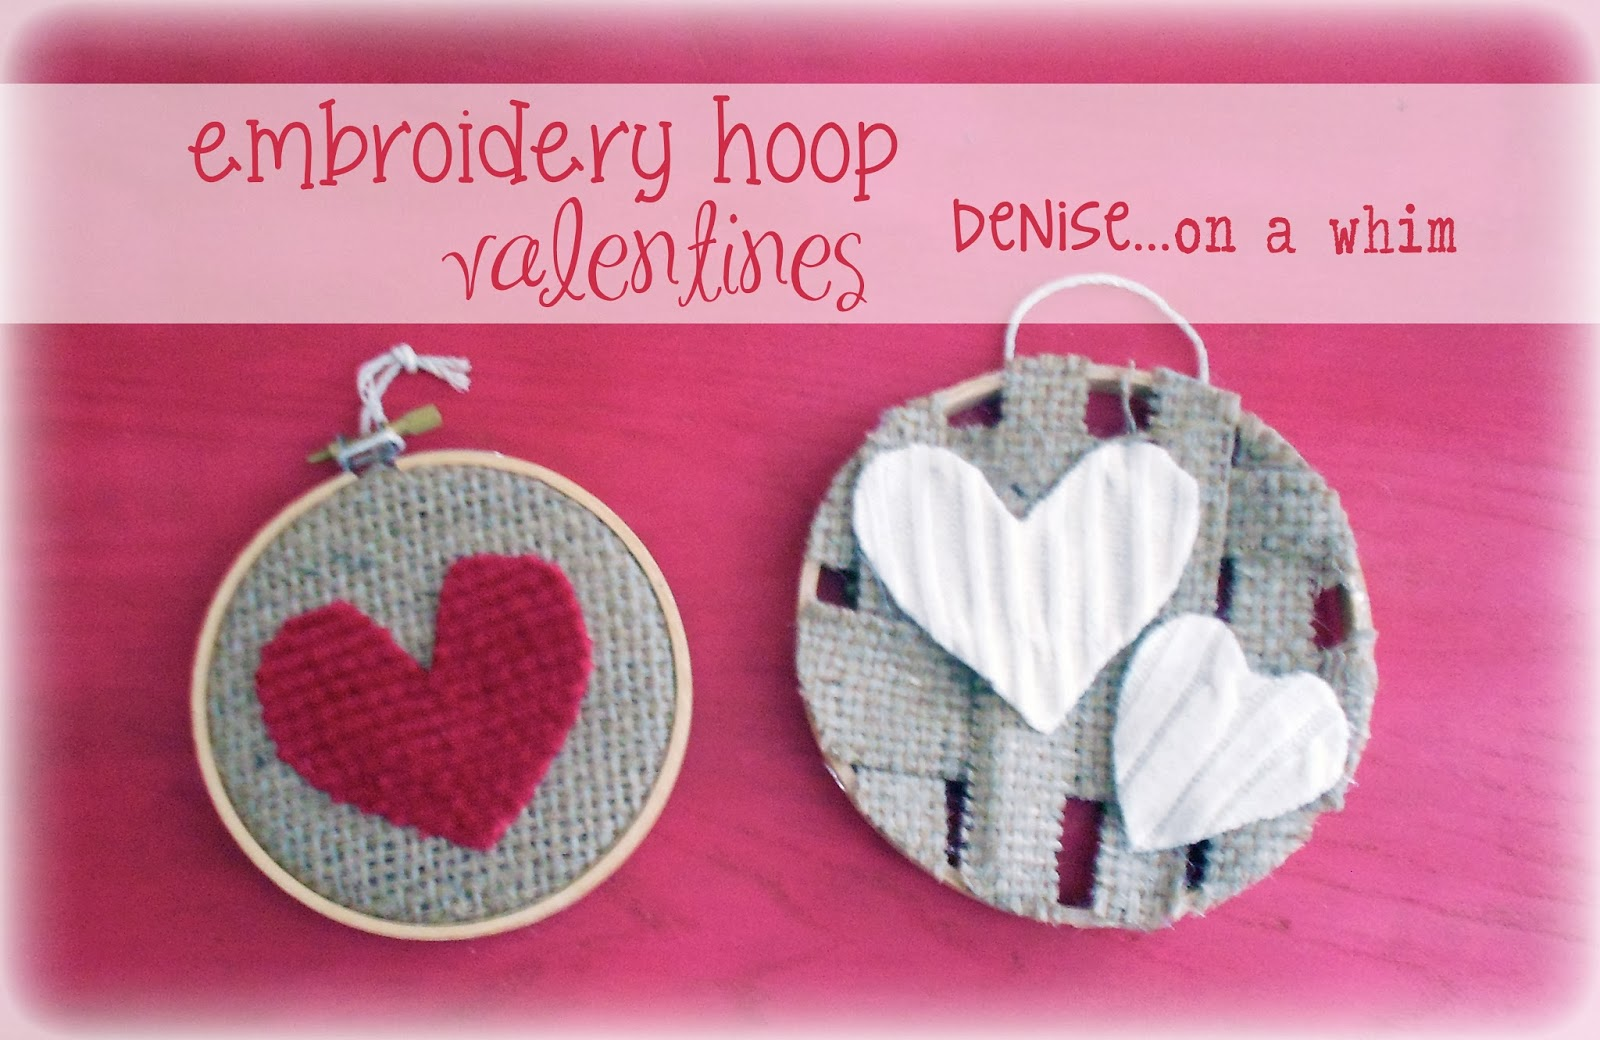 Embroidery Hoop Valentines via http://deniseonawhim.blogspot.com